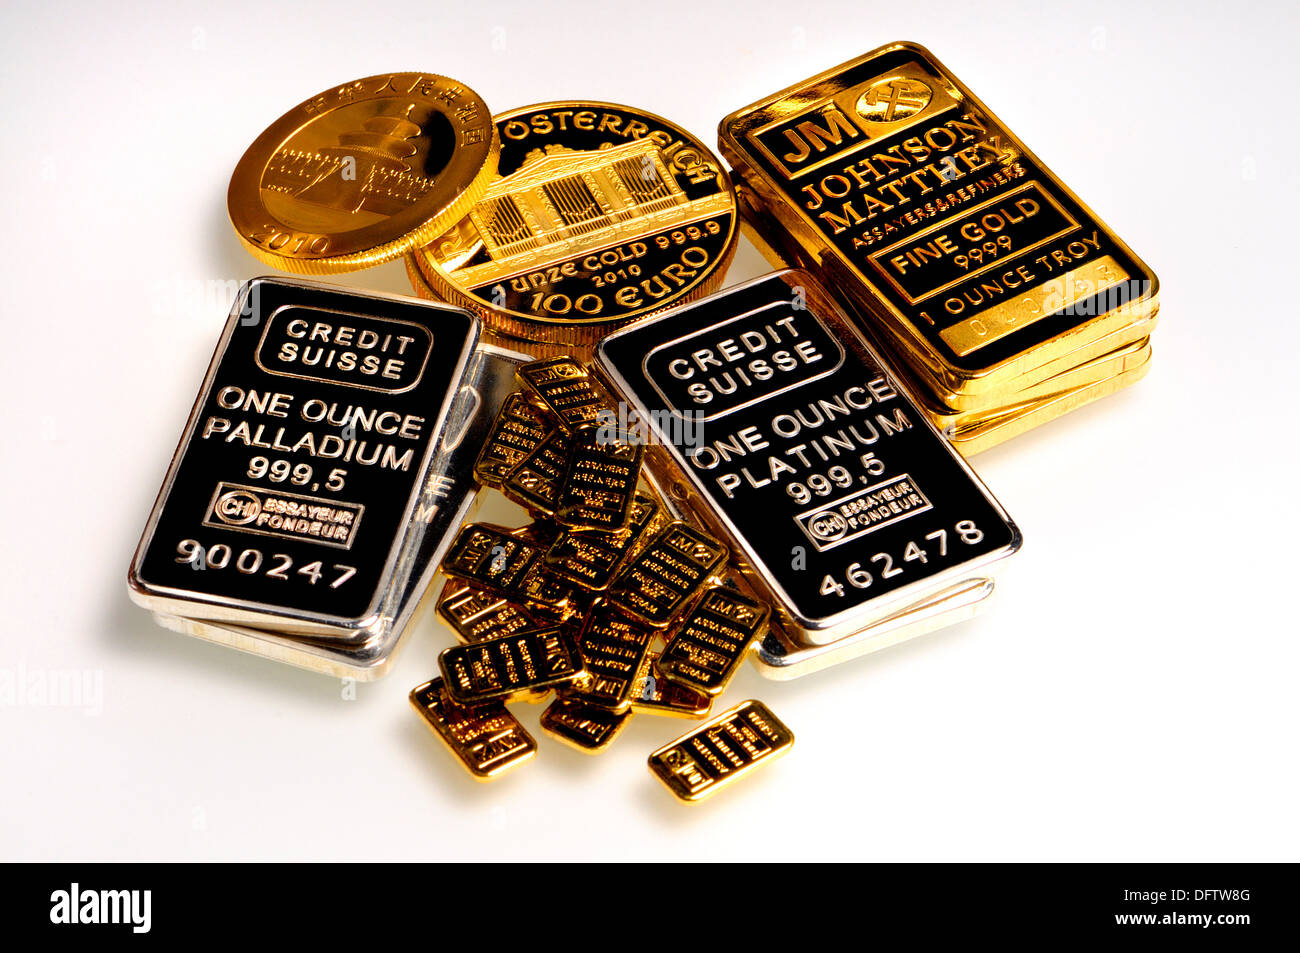 Gold, Palladium and Platinum bullion (plated replicas) - Stock Image